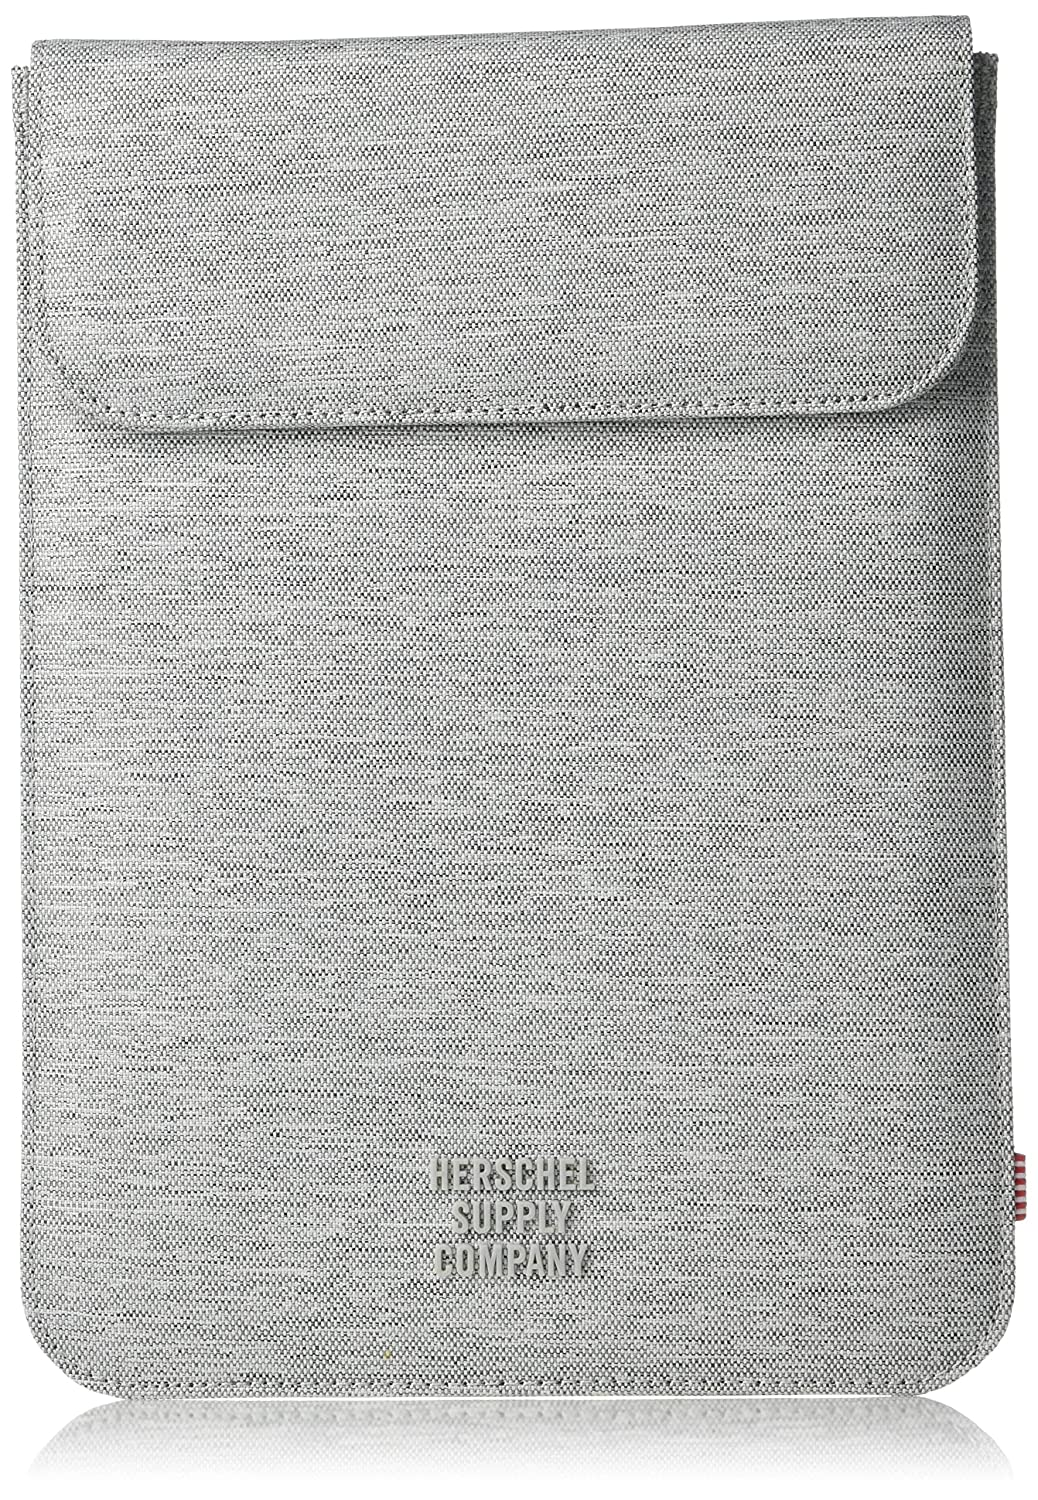 Herschel Mens Spokane Sleeve for Ipad Air